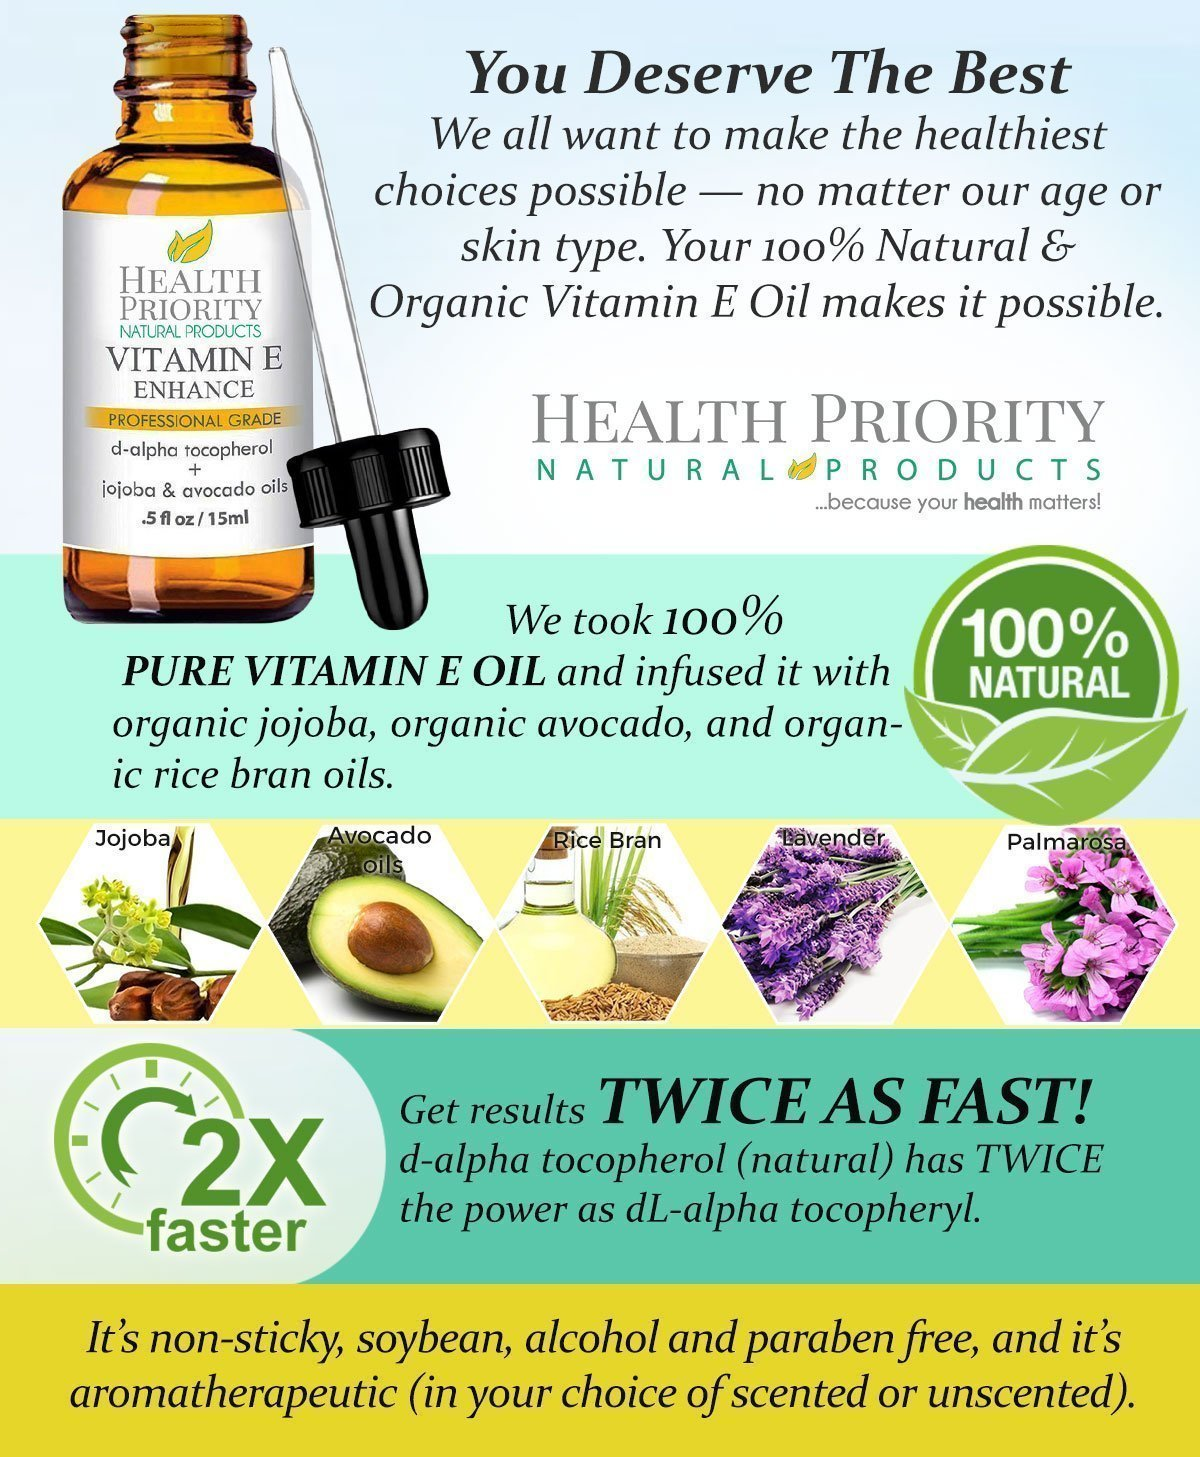 100% All Natural & Organic Vitamin E Oil For Your Face & Skin - 15,000/30,000 IU - Reduces Wrinkles, Lightens Dark Spots, Heals Stretch Marks & Surgical Scars. Best Treatment for Hair, Nails, Lips by Health Priority Natural Products (Image #5)